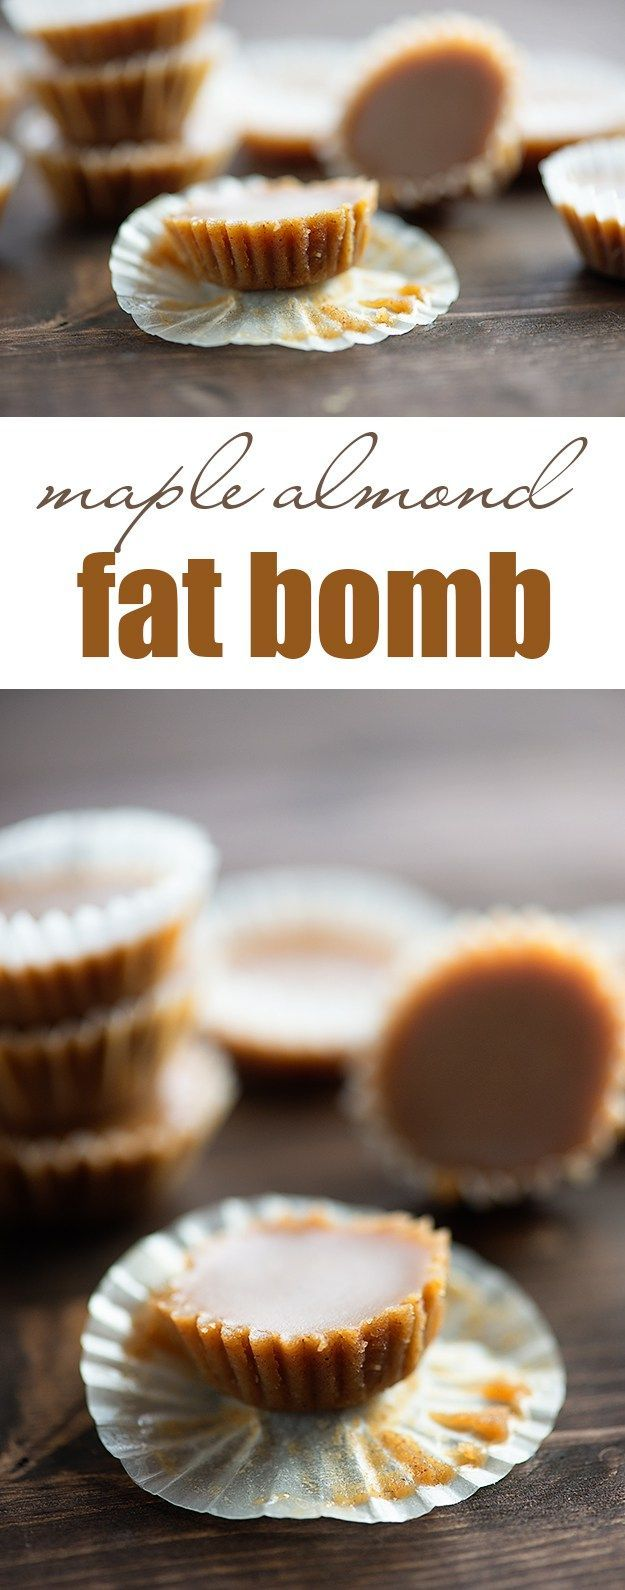 Best 25+ Fat bombs keto ideas on Pinterest | Fat bombs, Ketogenic meals and Atkins recipes